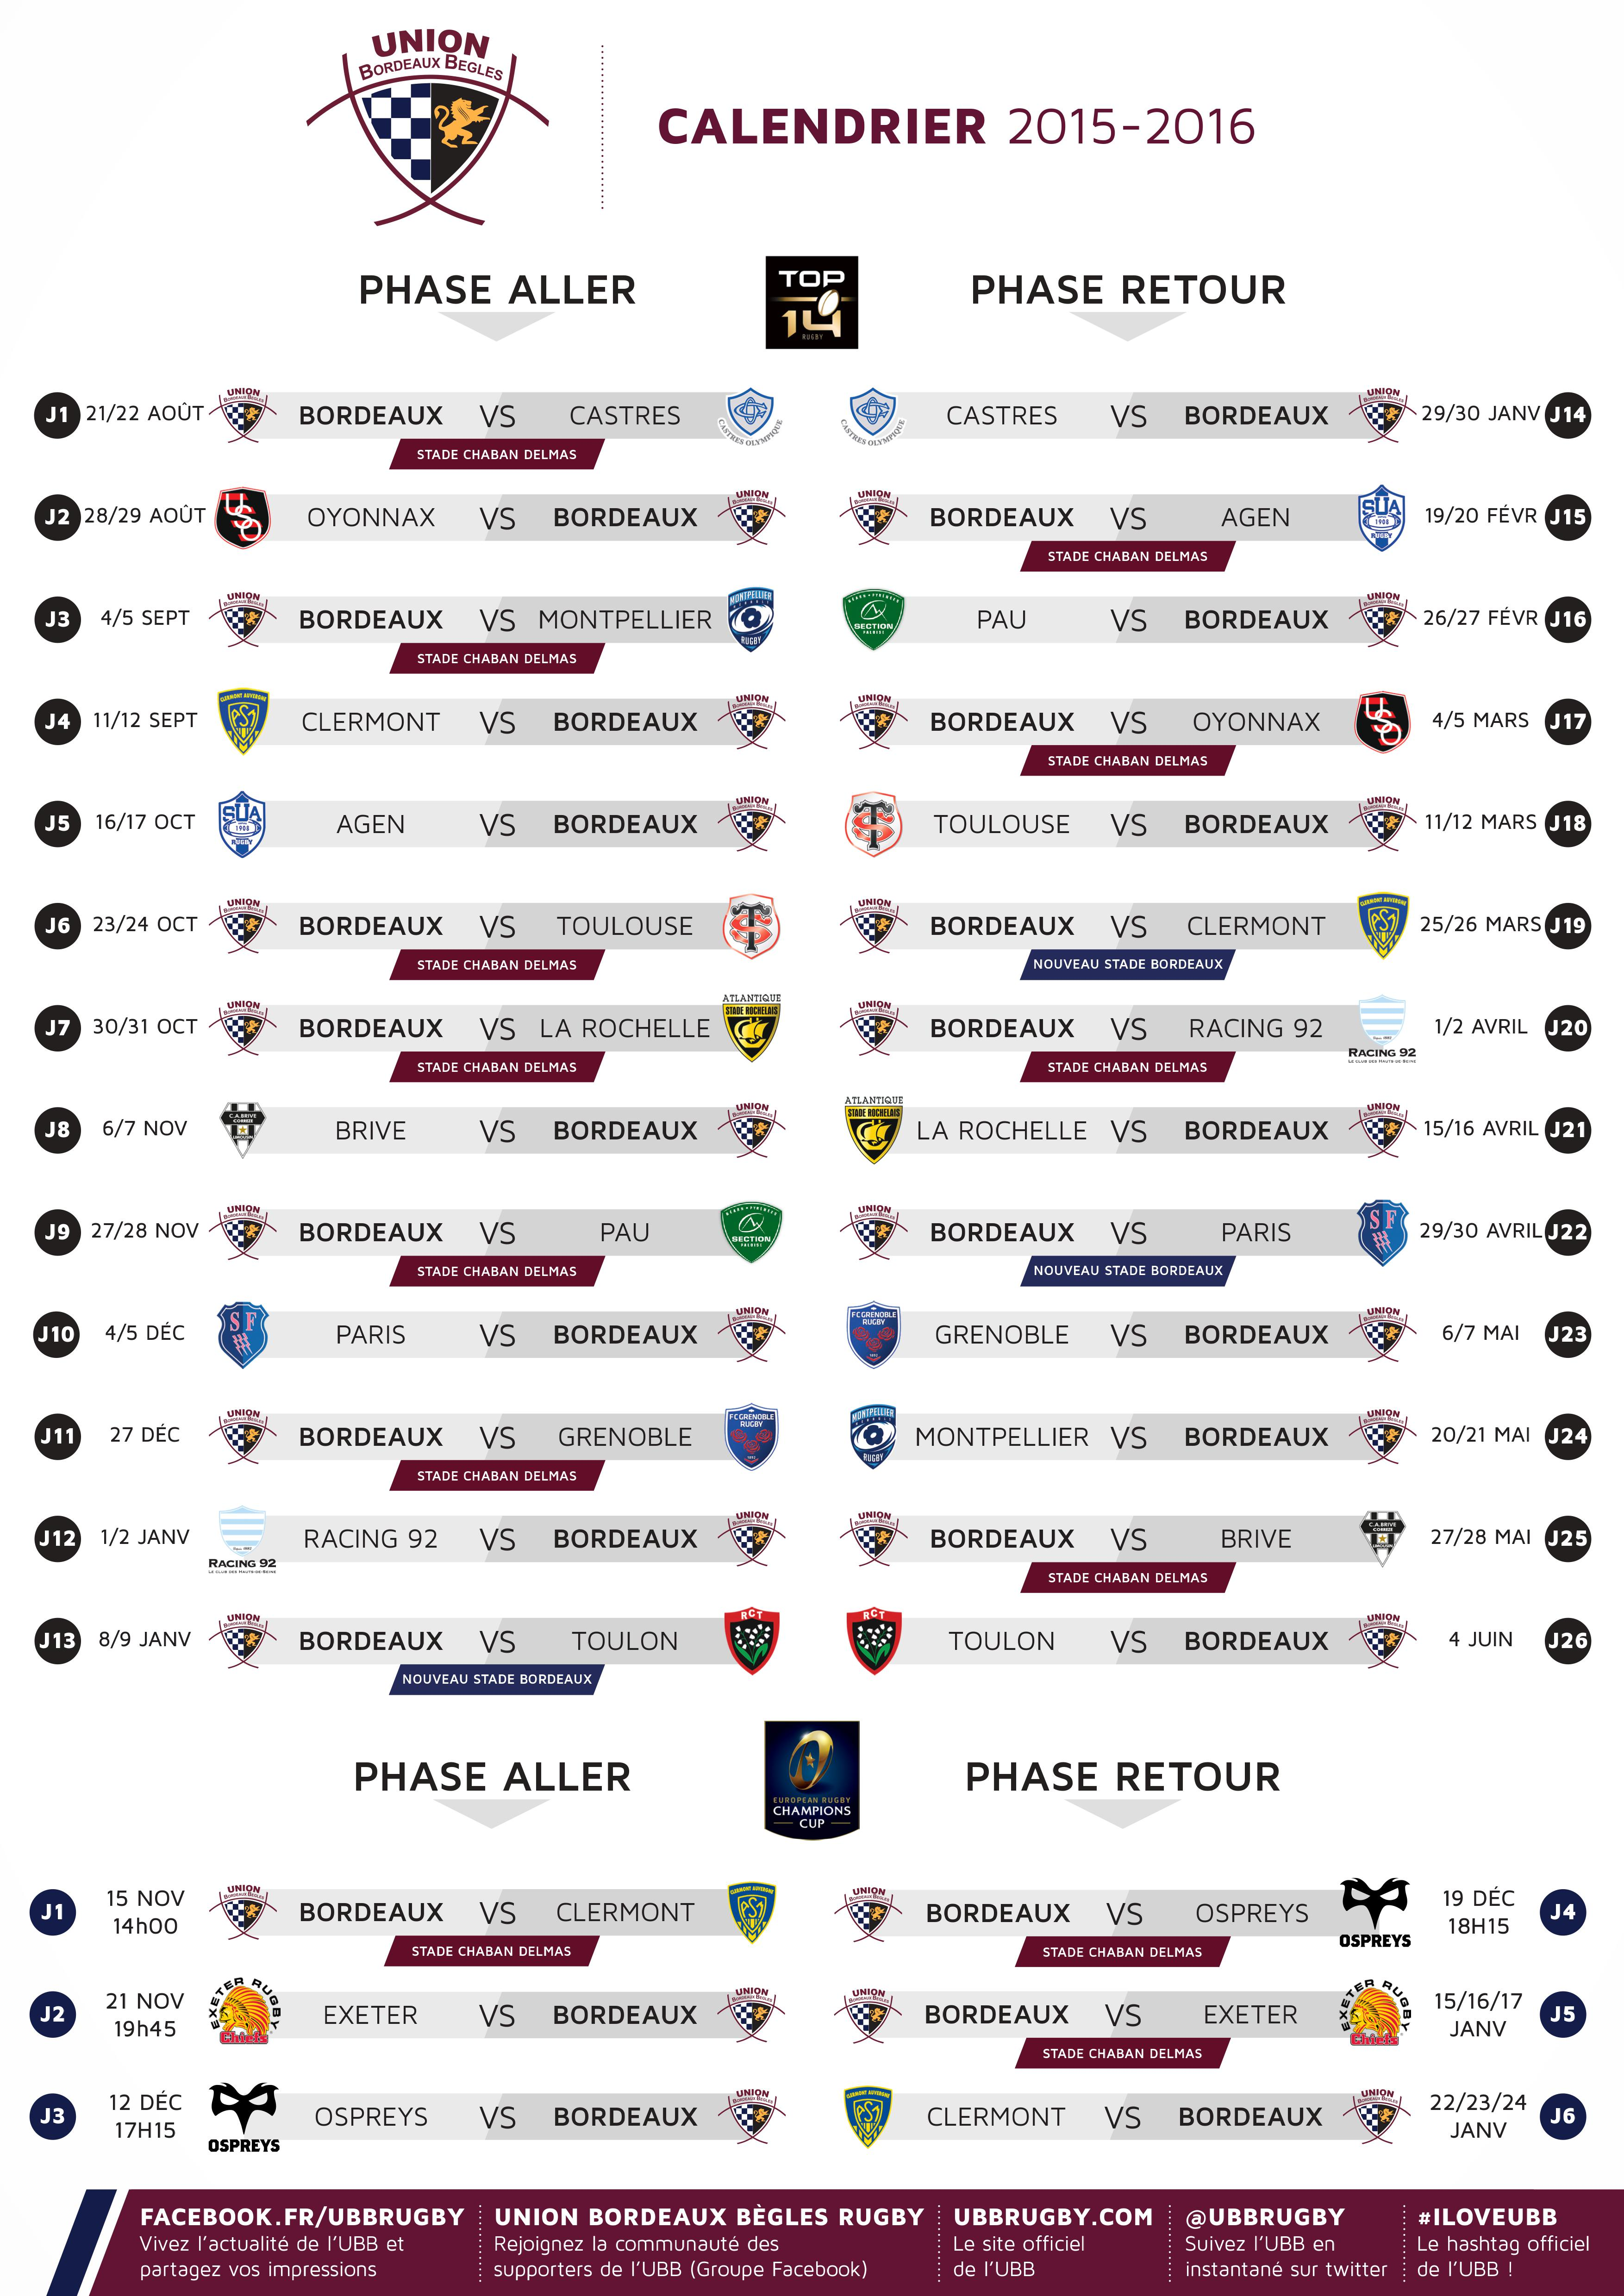 le calendrier de la champions cup 2015 2016 d voil actualit s union bordeaux b gles. Black Bedroom Furniture Sets. Home Design Ideas